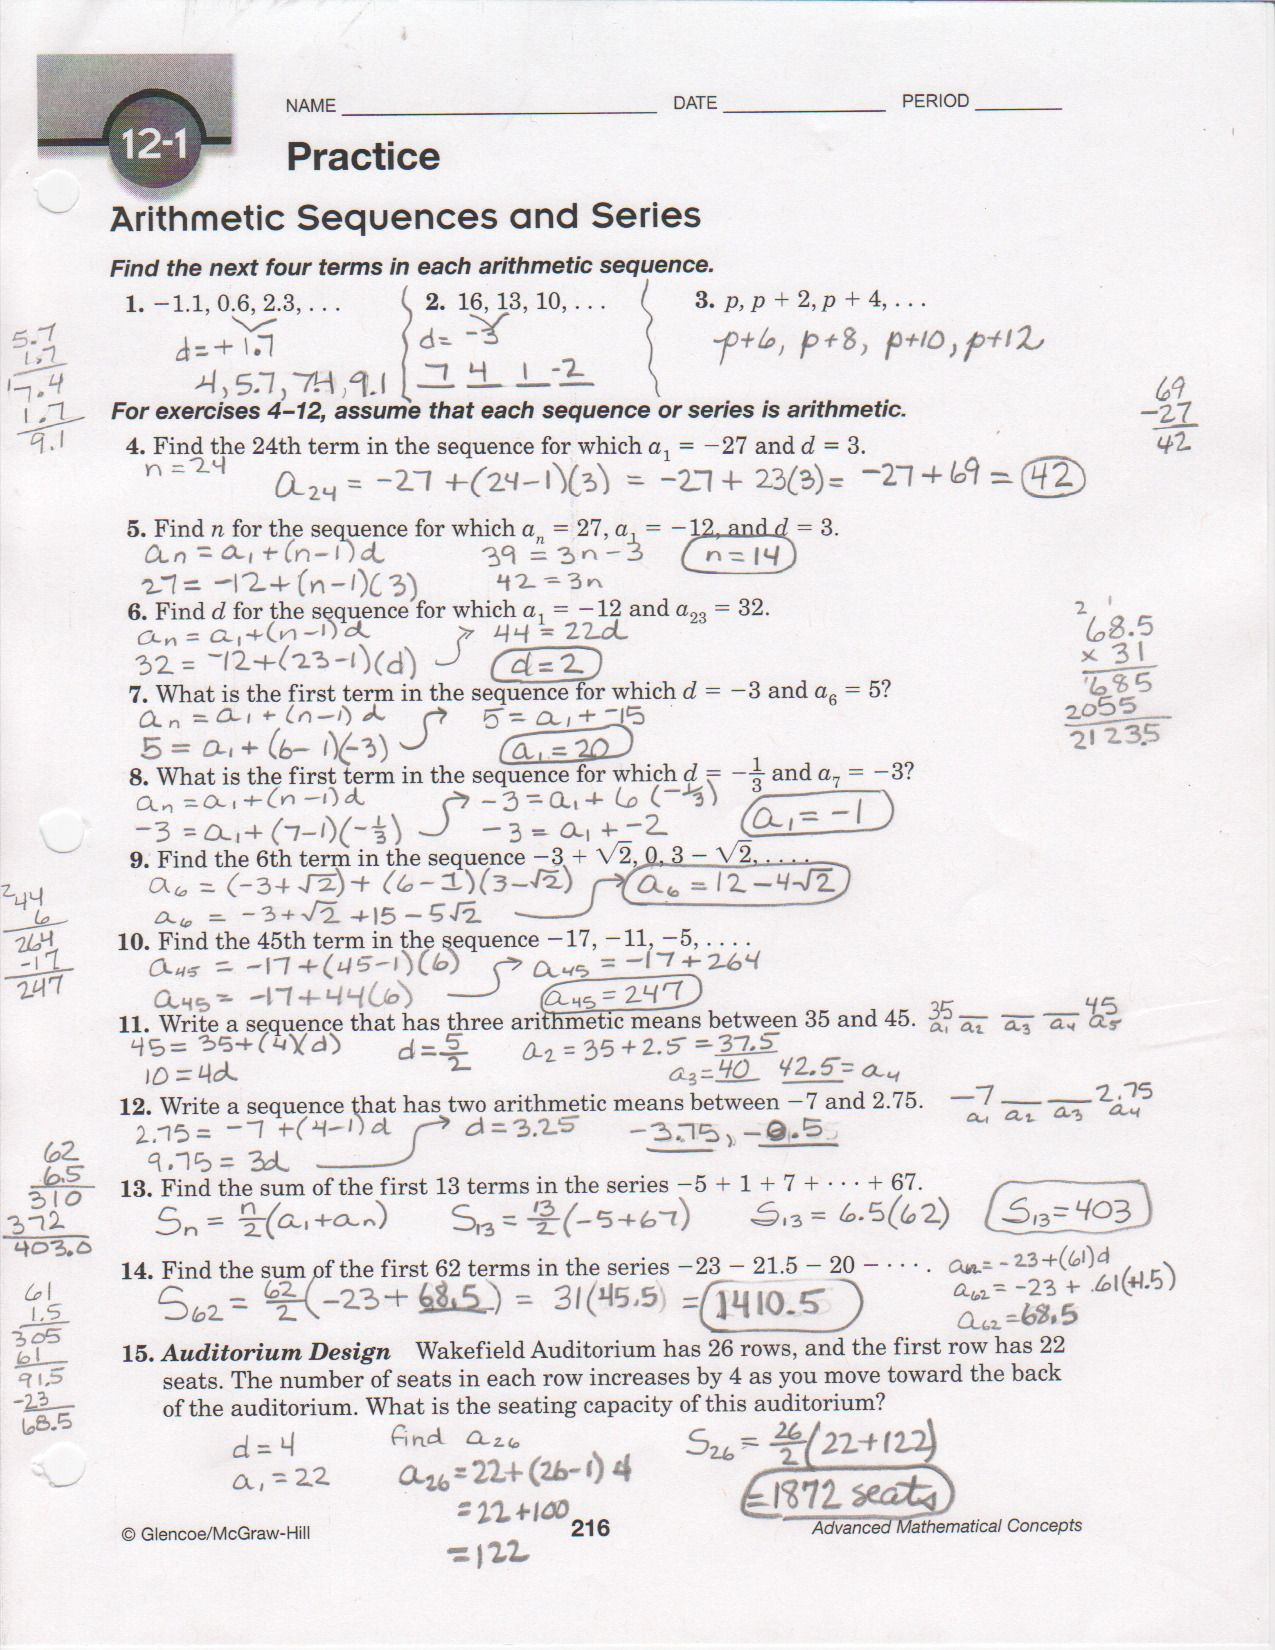 Arithmetic Sequence Worksheet with Answers Arithmetic Sequences Worksheet Answer Key Promotiontablecovers